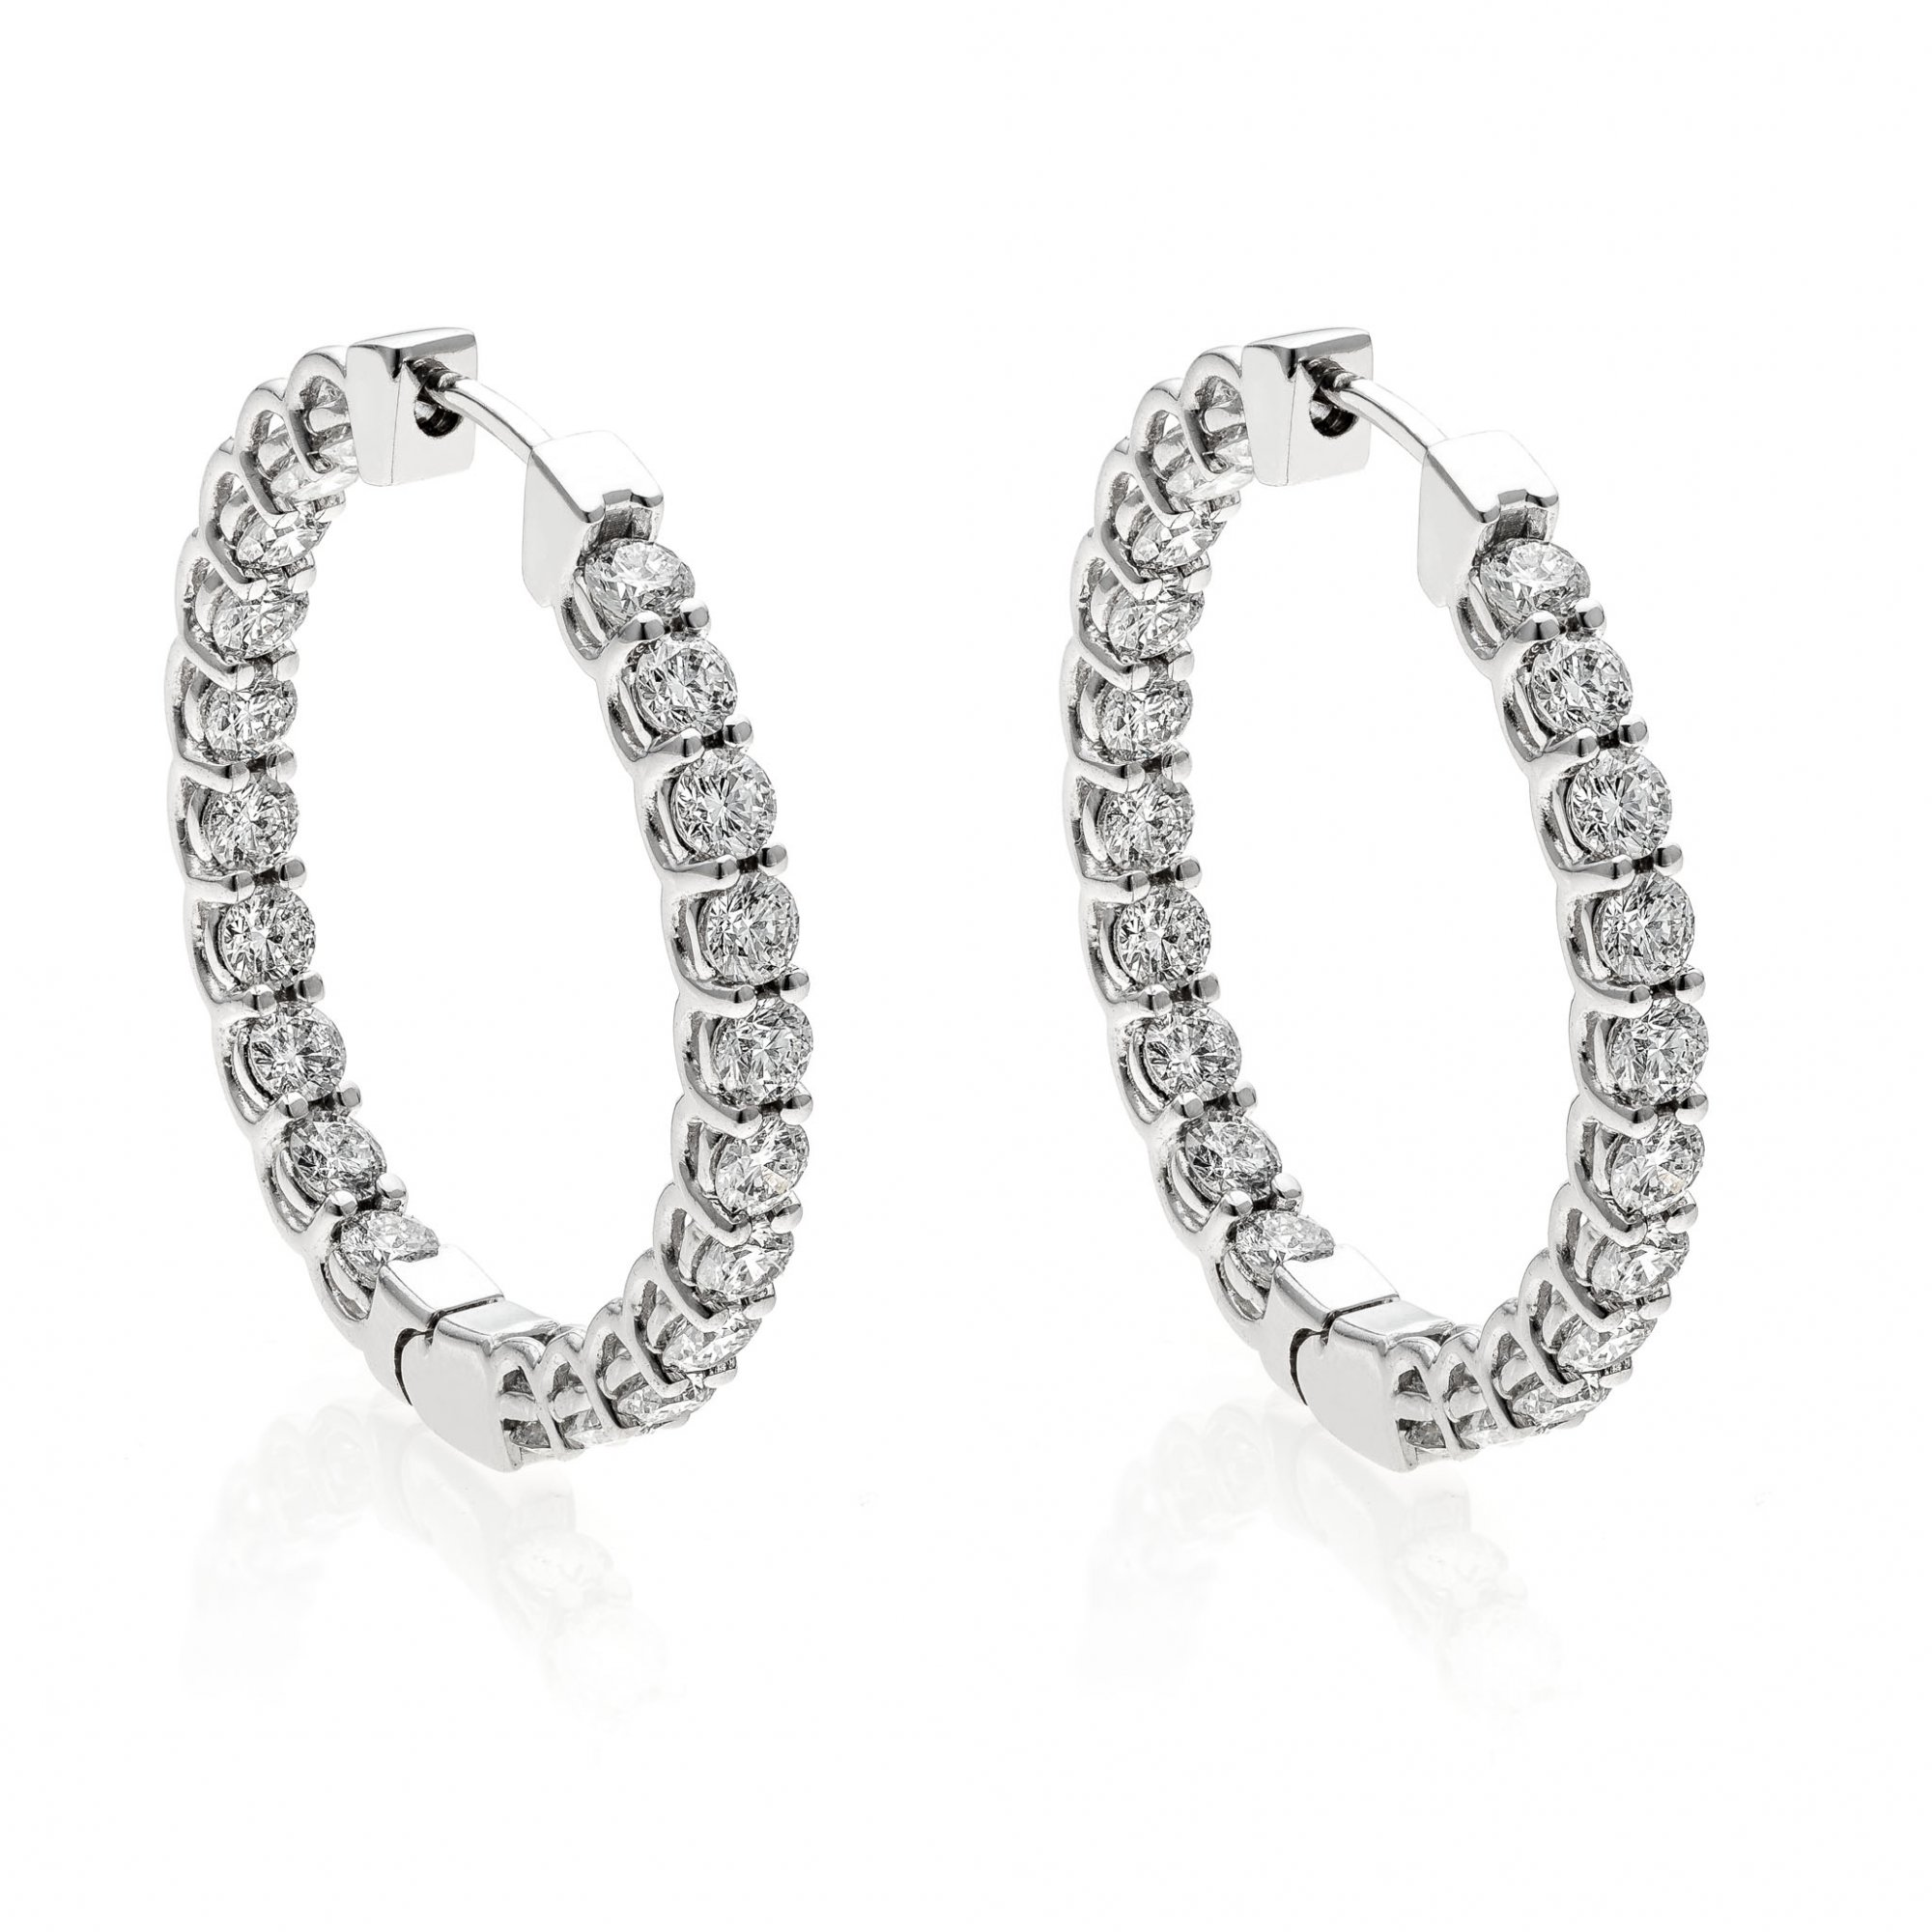 18 KT white gold earrings with round brilliant cut diamonds ct.1.20 VS1 G color